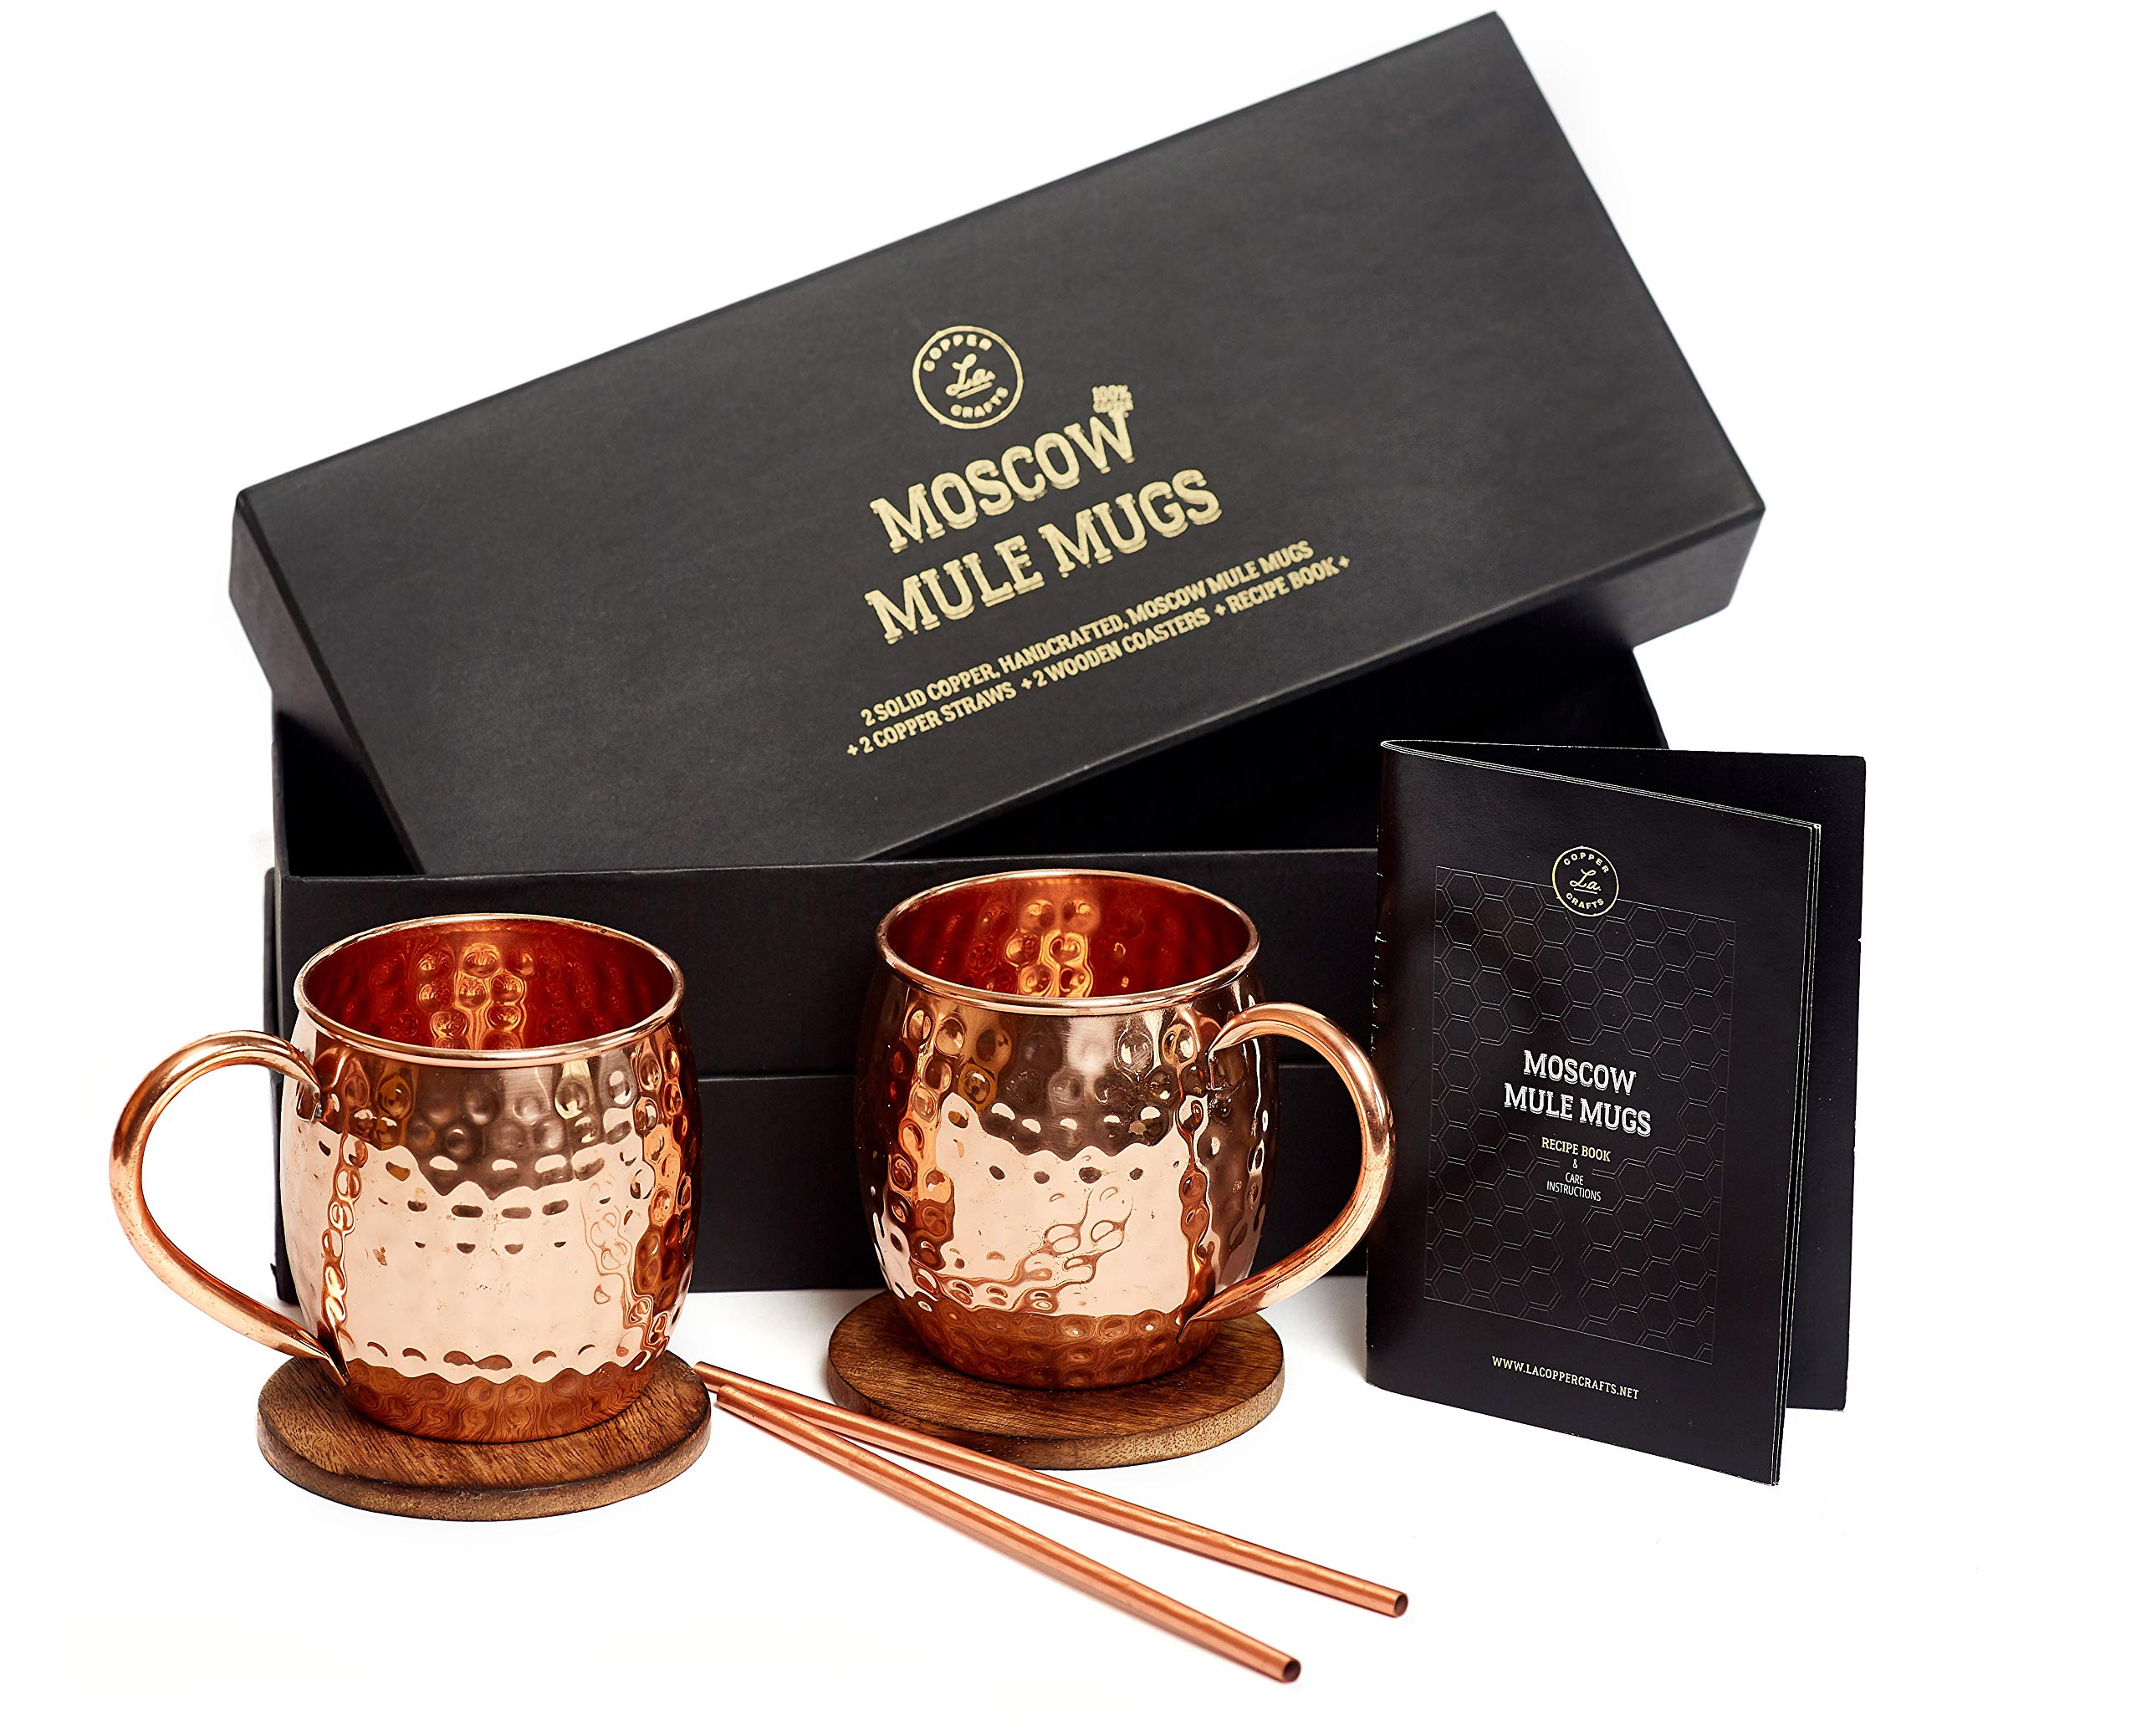 Moscow Mule Mugs Gift Set, 2 Authentic Handcrafted Copper Mugs (16 oz.), 2 Straws, 2 Solid Wood Coasters and Recipe Book